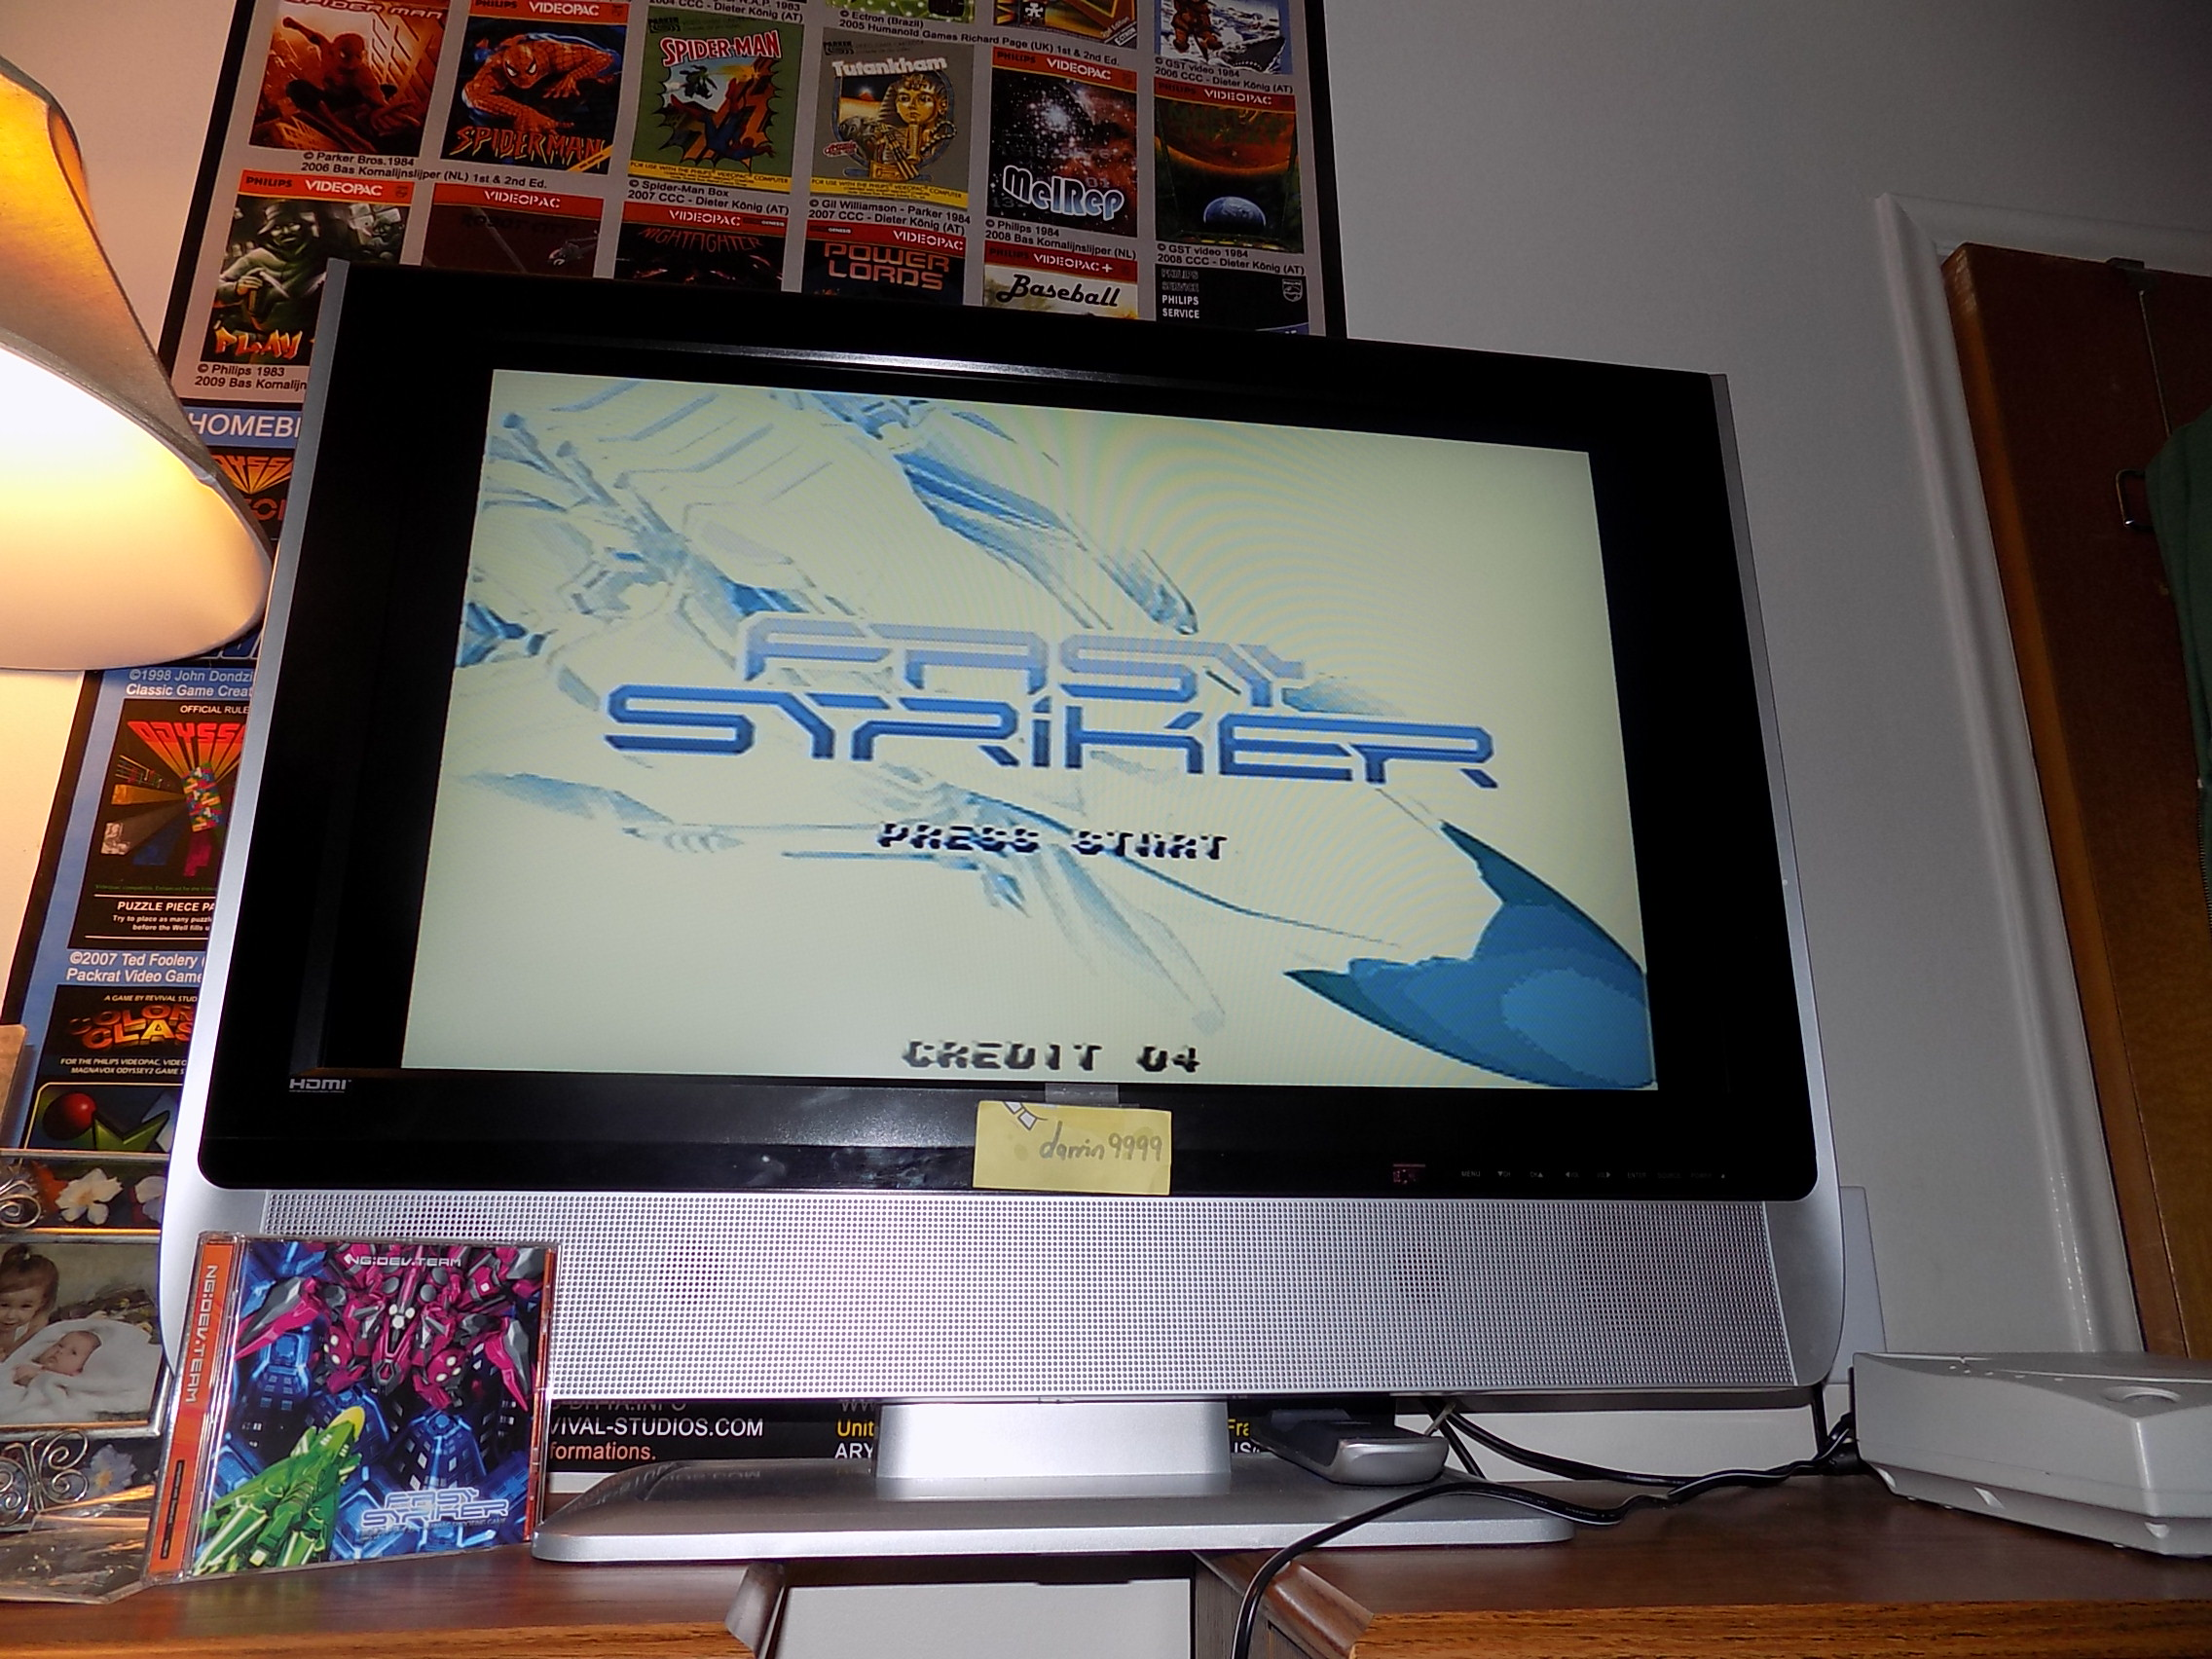 darrin9999: Fast Striker: Original Mode (Dreamcast) 37,477,410 points on 2018-01-23 16:53:39